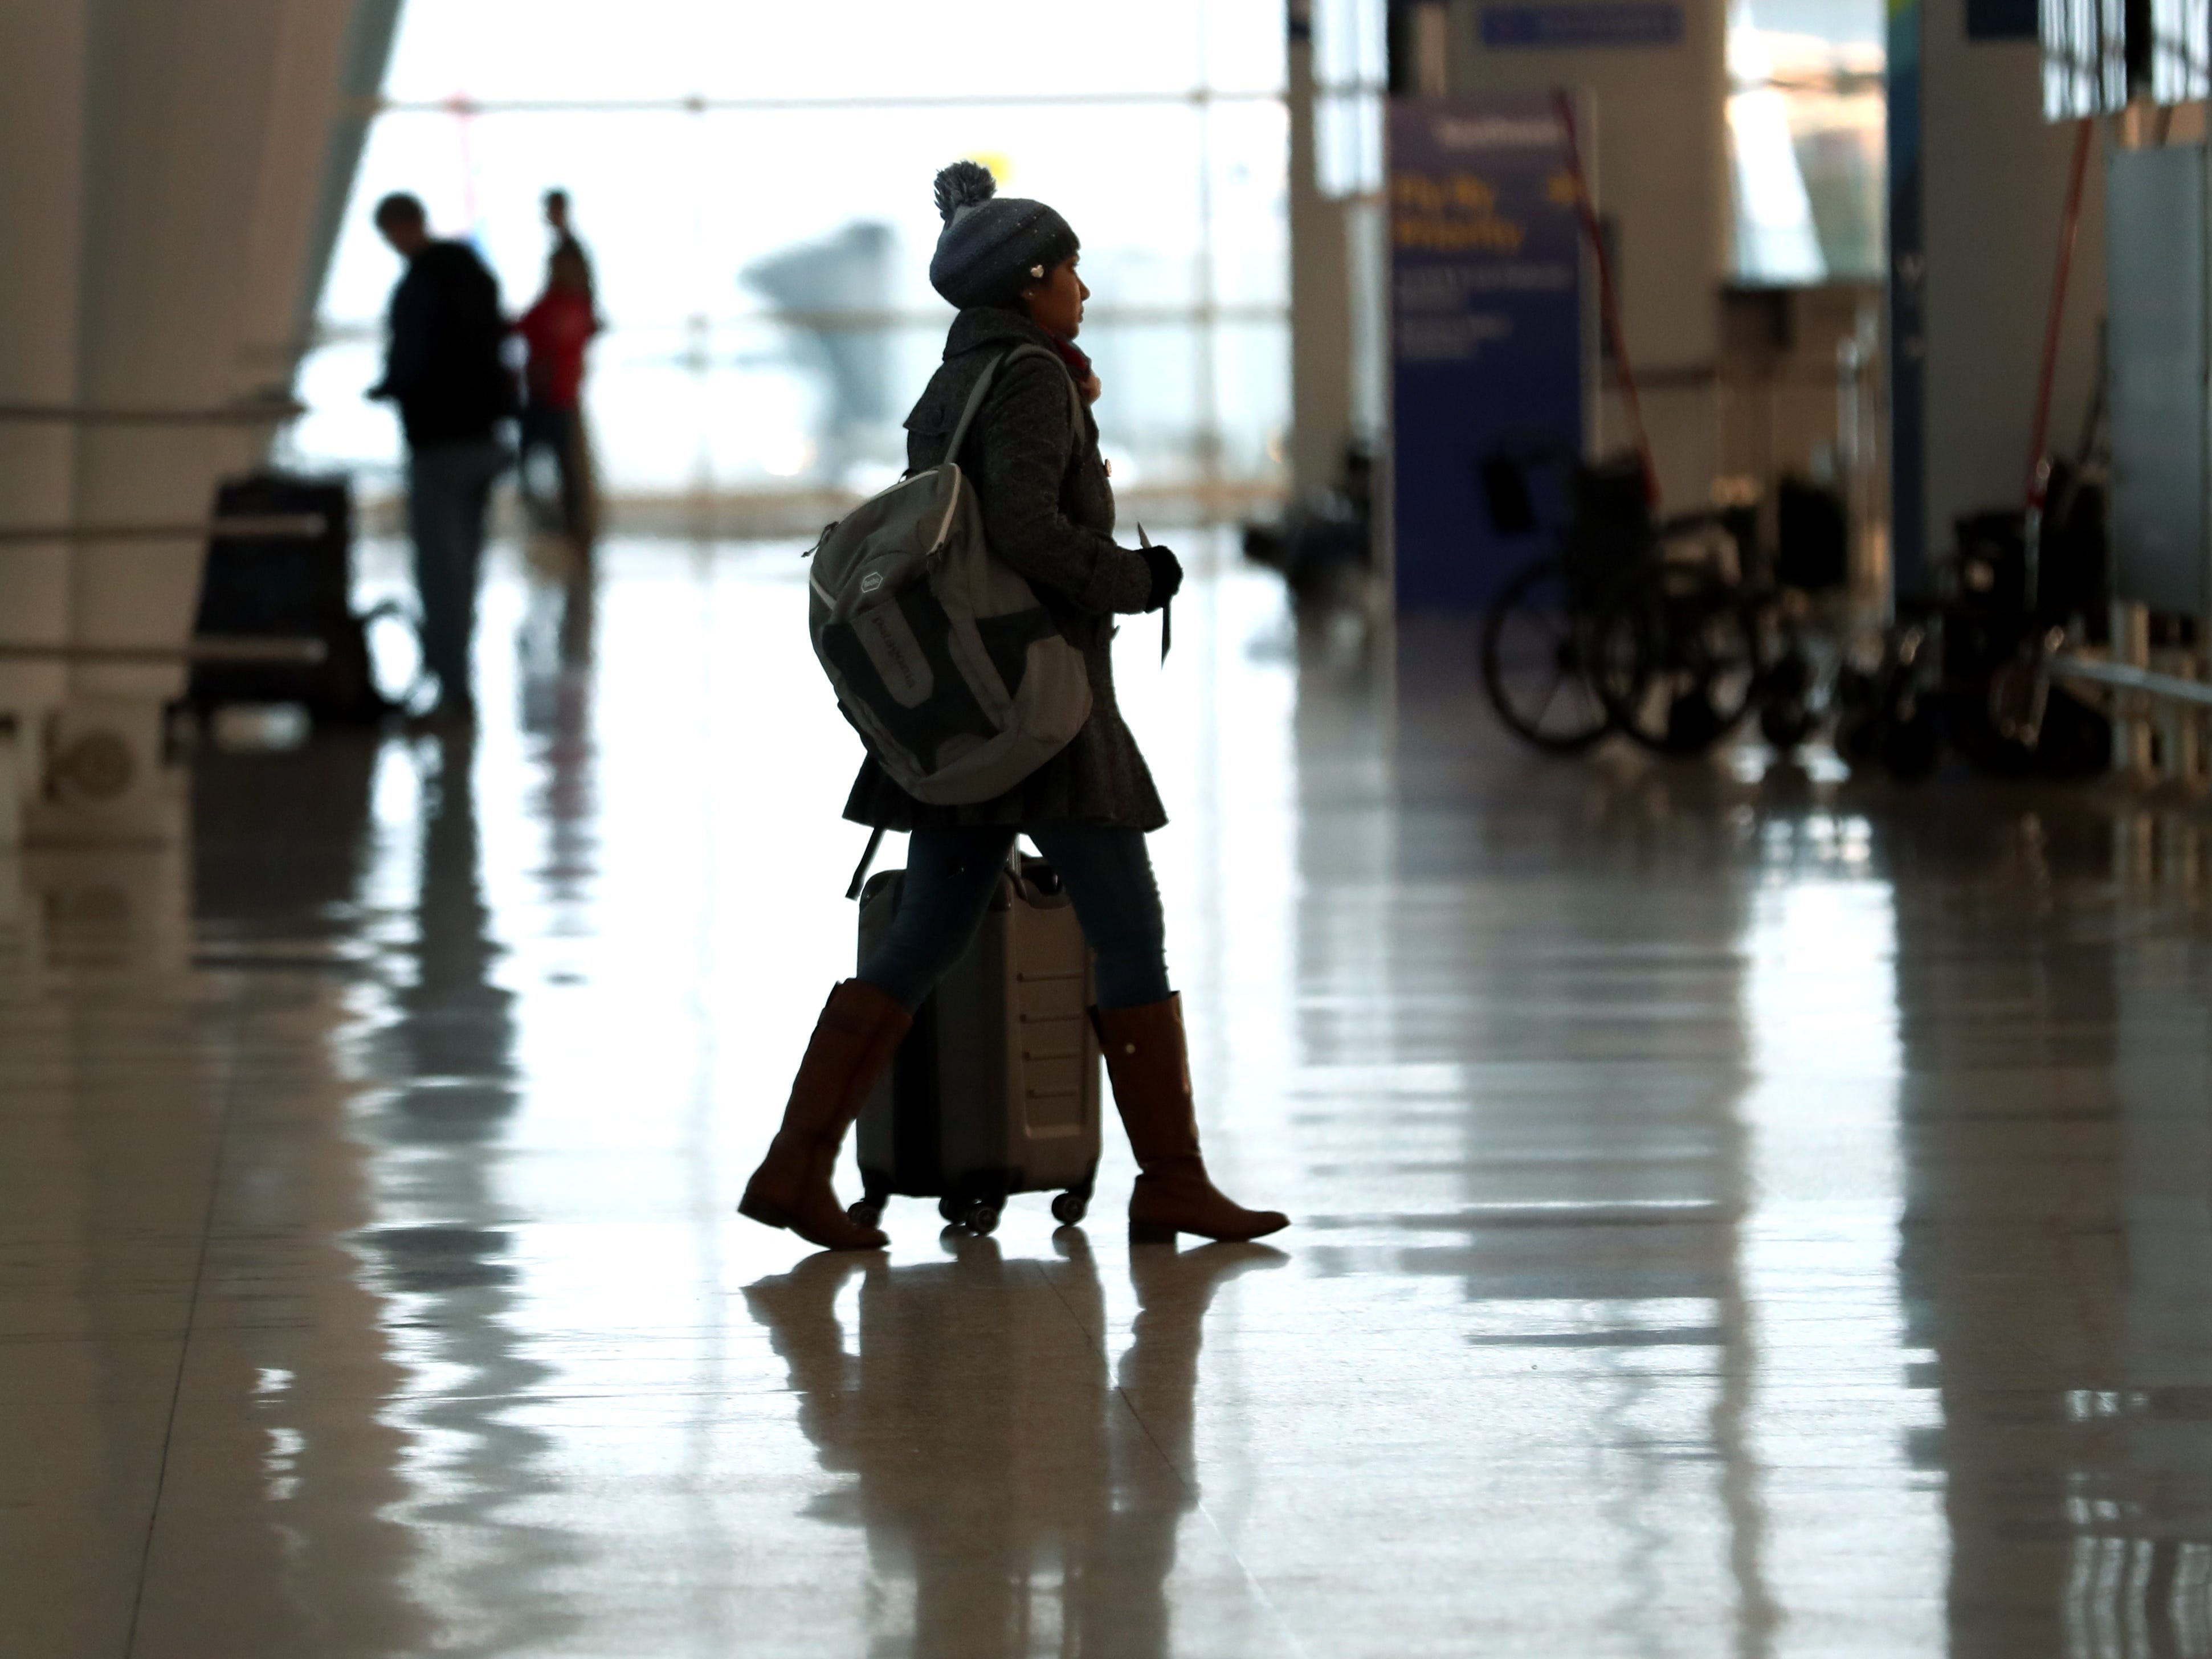 Travelers arrive at the Indianapolis International Airport, Tuesday, Jan. 15, 2019.